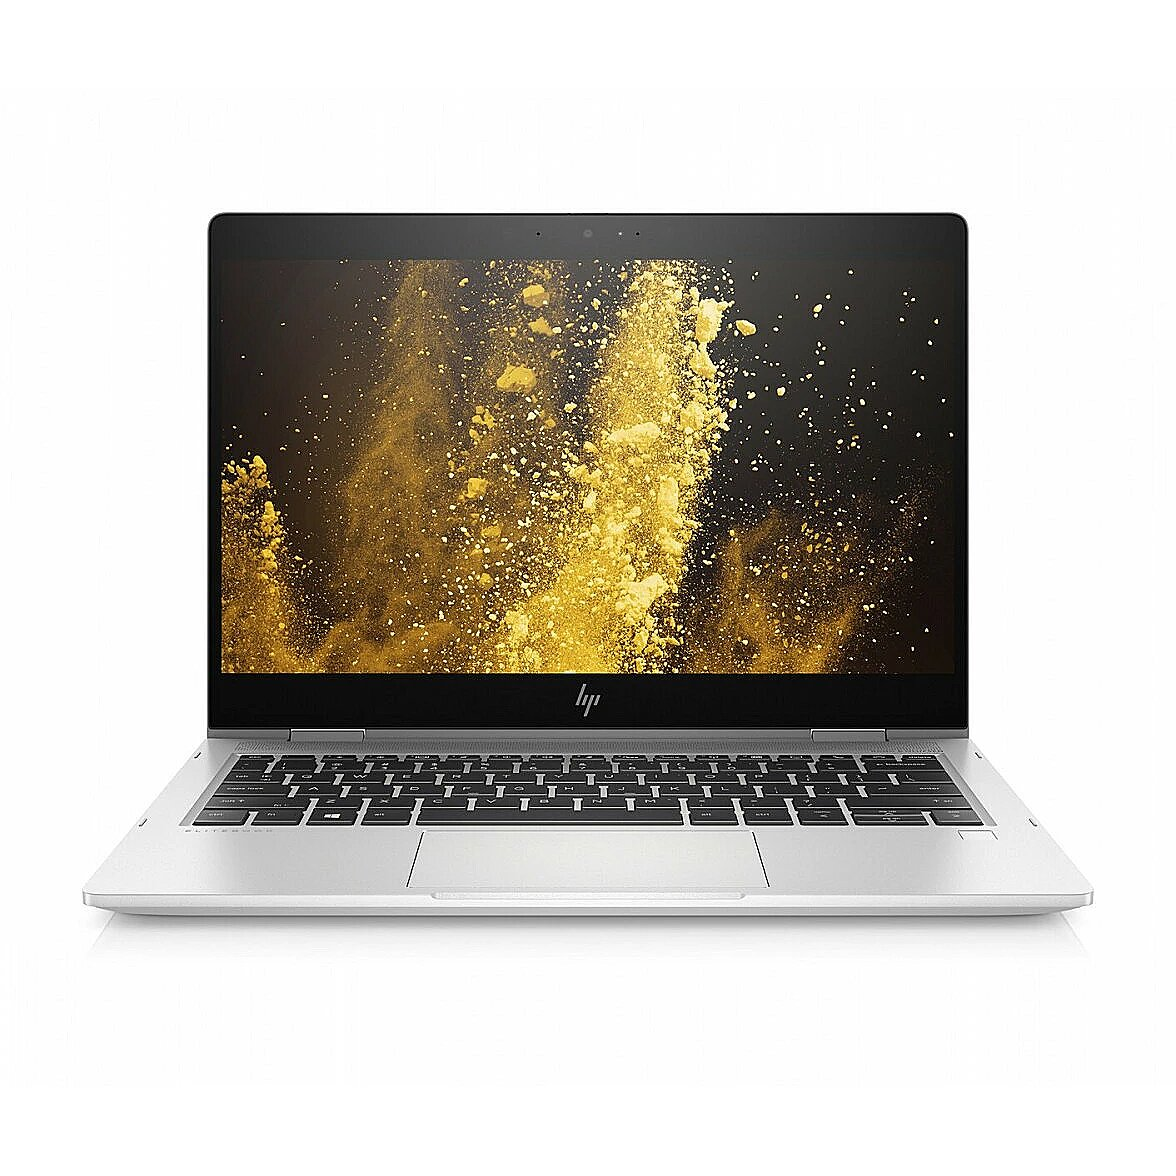 Hewlett Packard Elitebook x360 830 G6 i7-8565U 512..